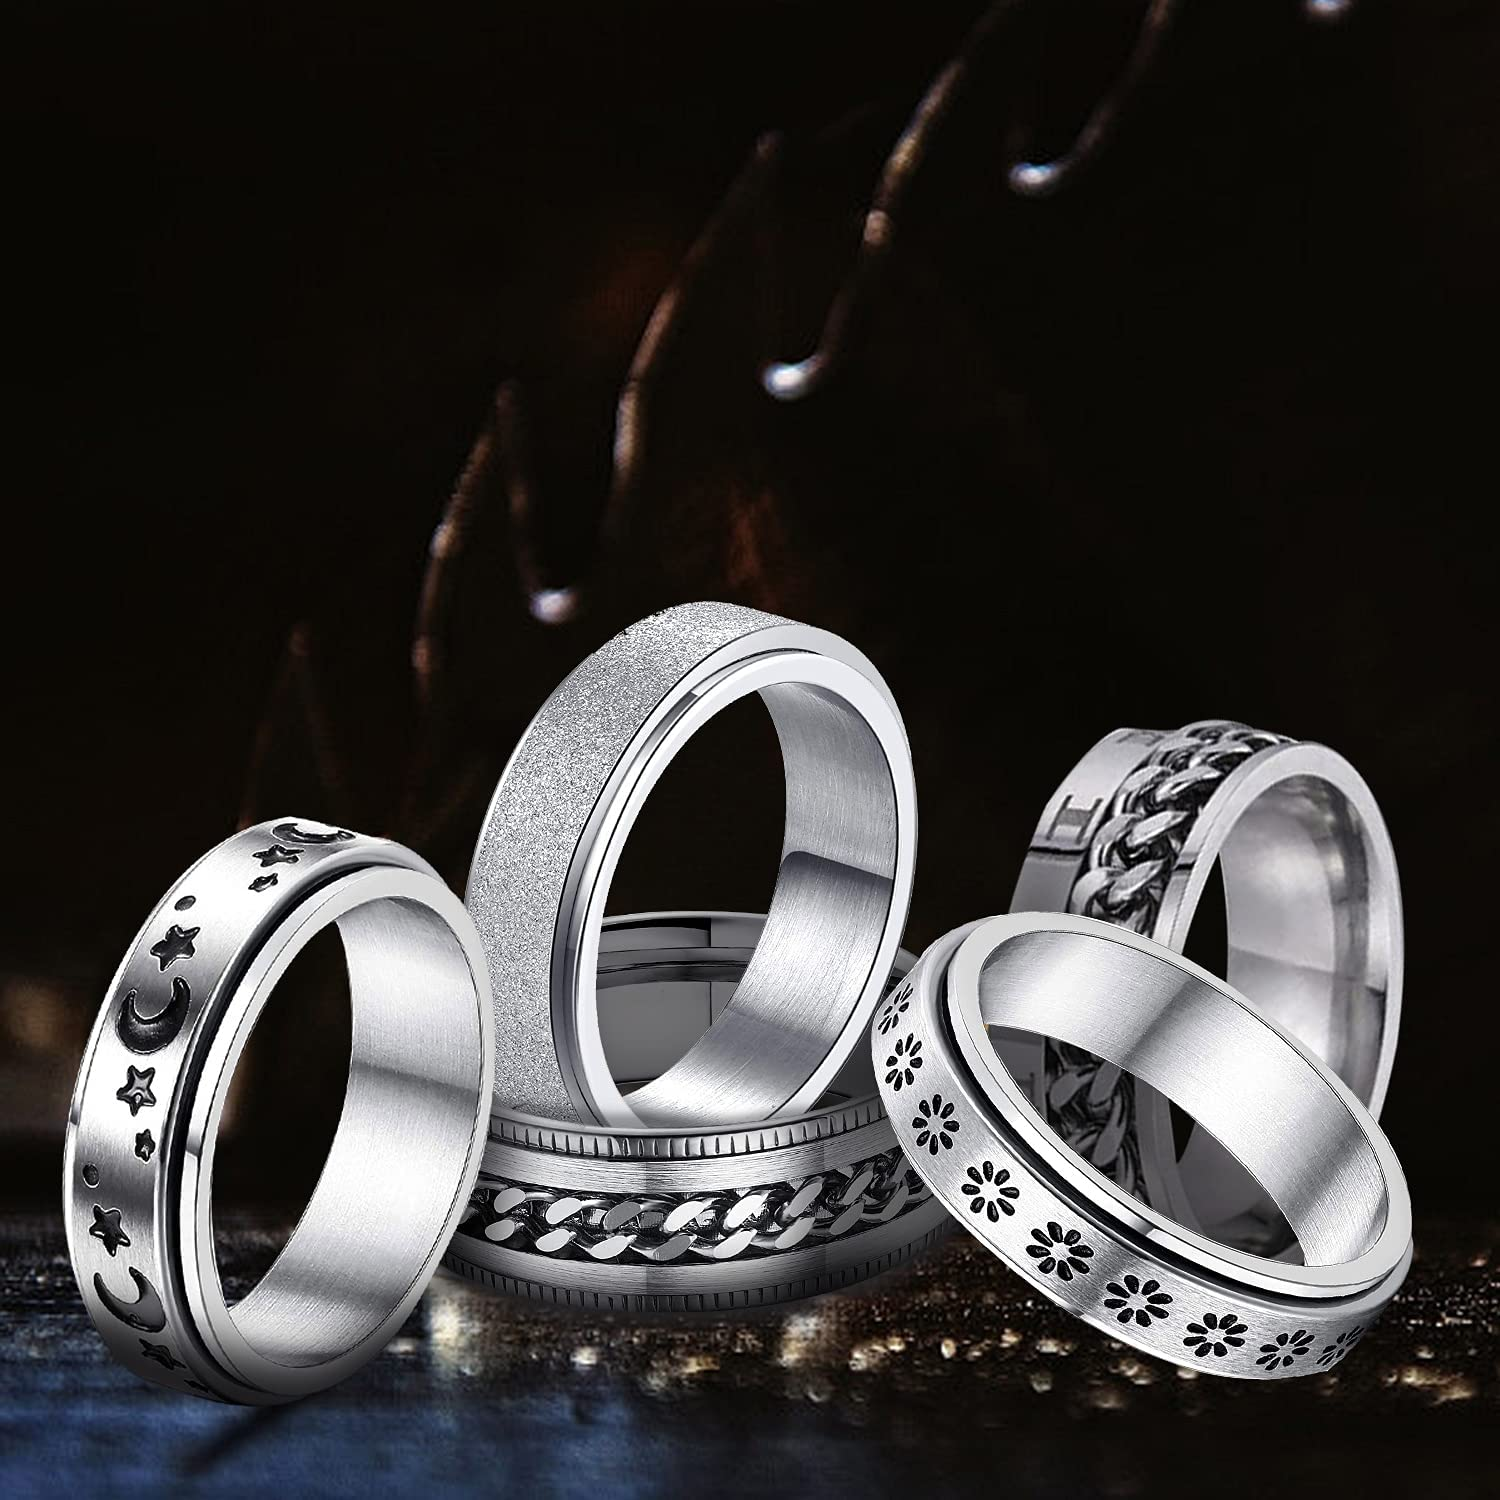 4pcs rings for men women wedding bands anti anciety fidget toy promise couple cute indie aesthetic jewelry stainless steel hippie matching rings set for adults teens couples